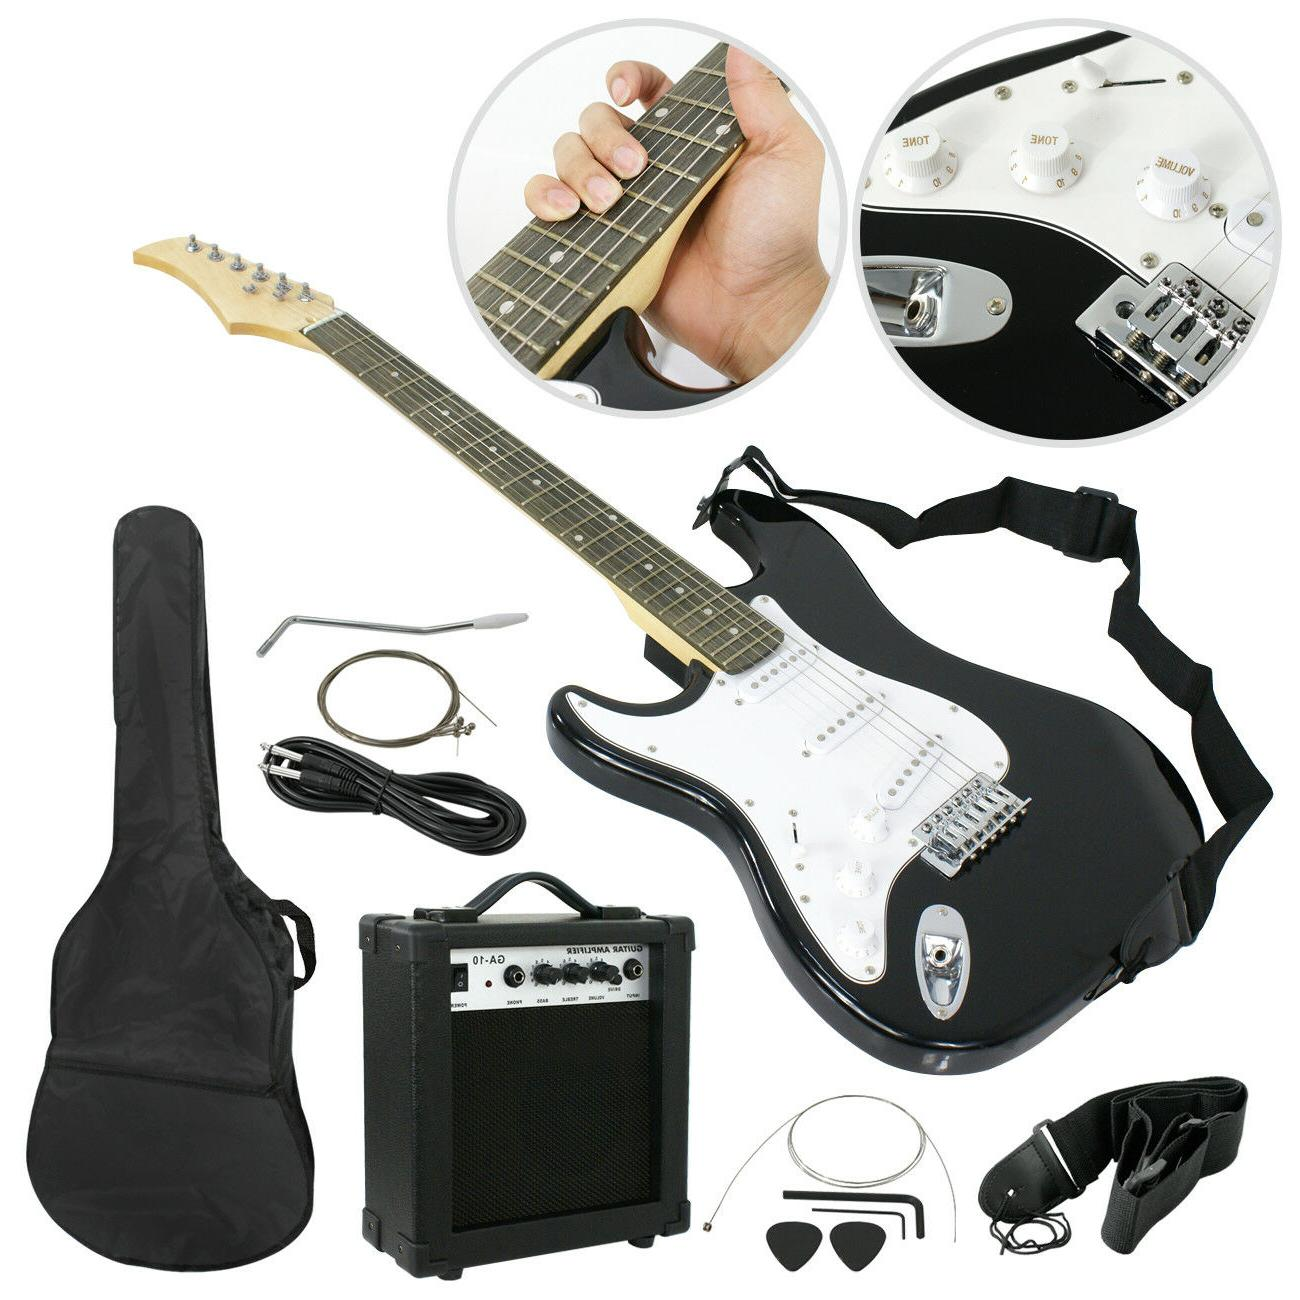 Full Guitar with and Accessories